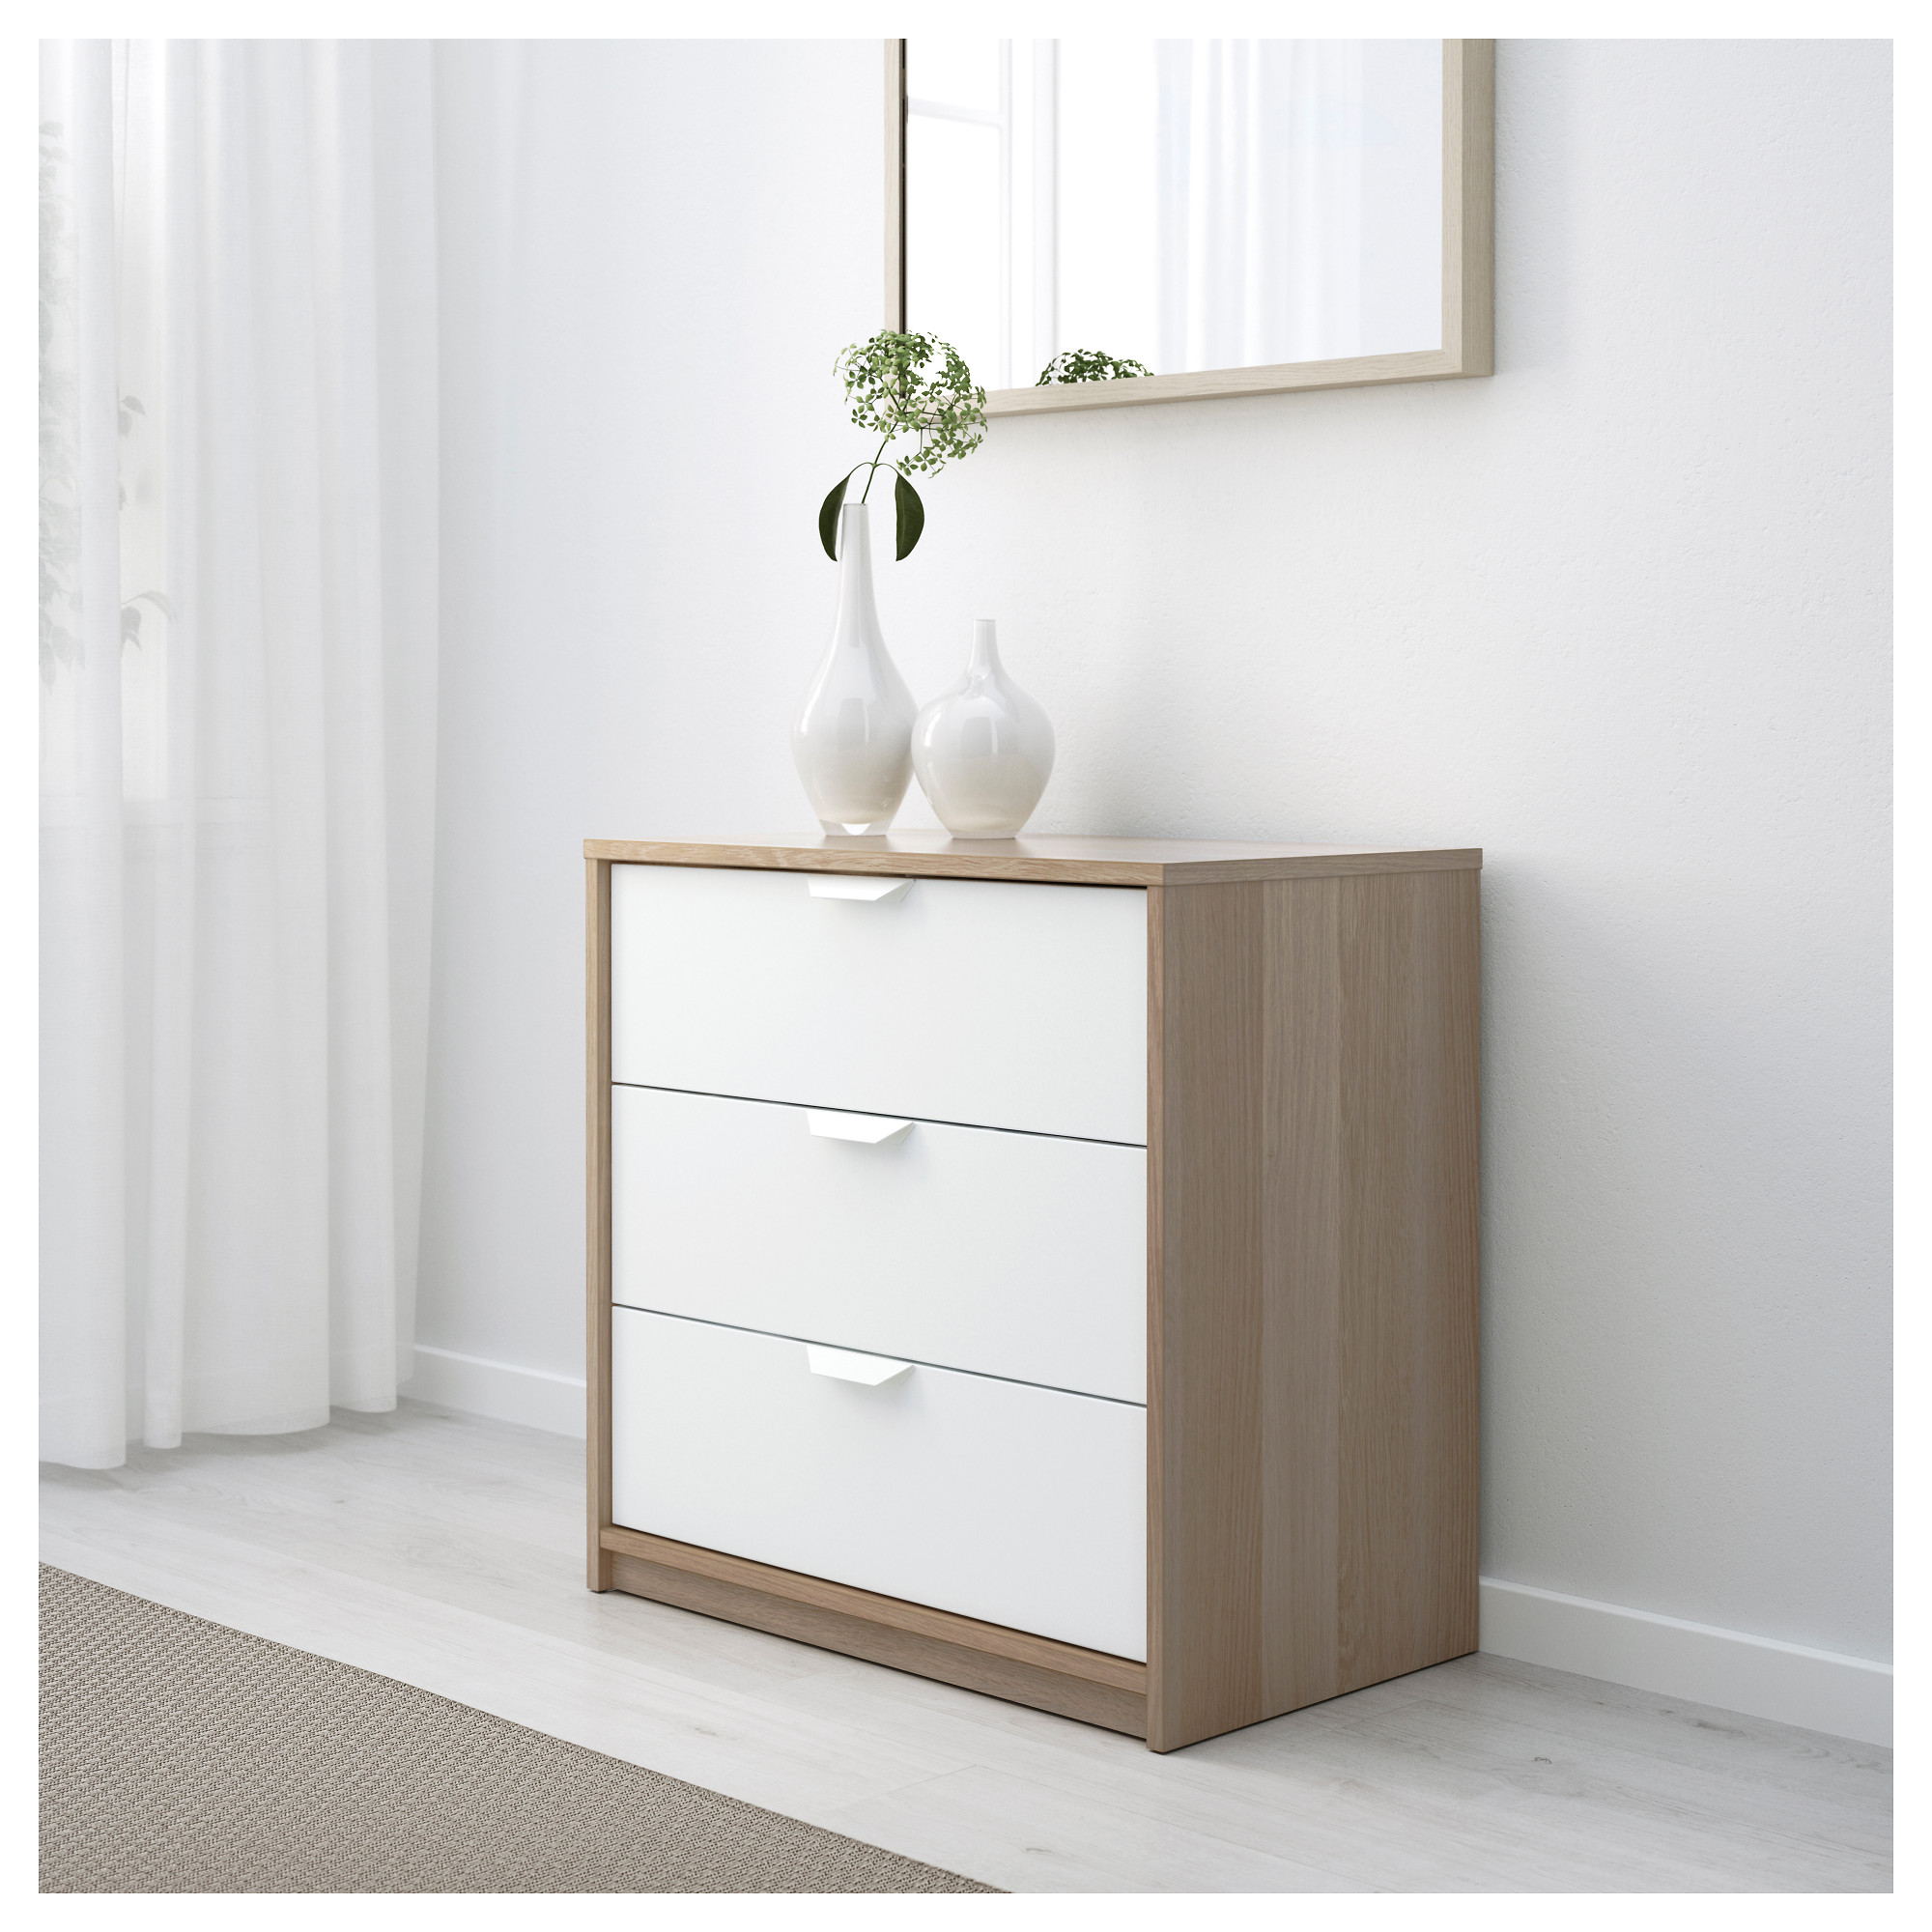 ASKVOLL Chest Of Drawers IKEA - Ikea chest of drawers